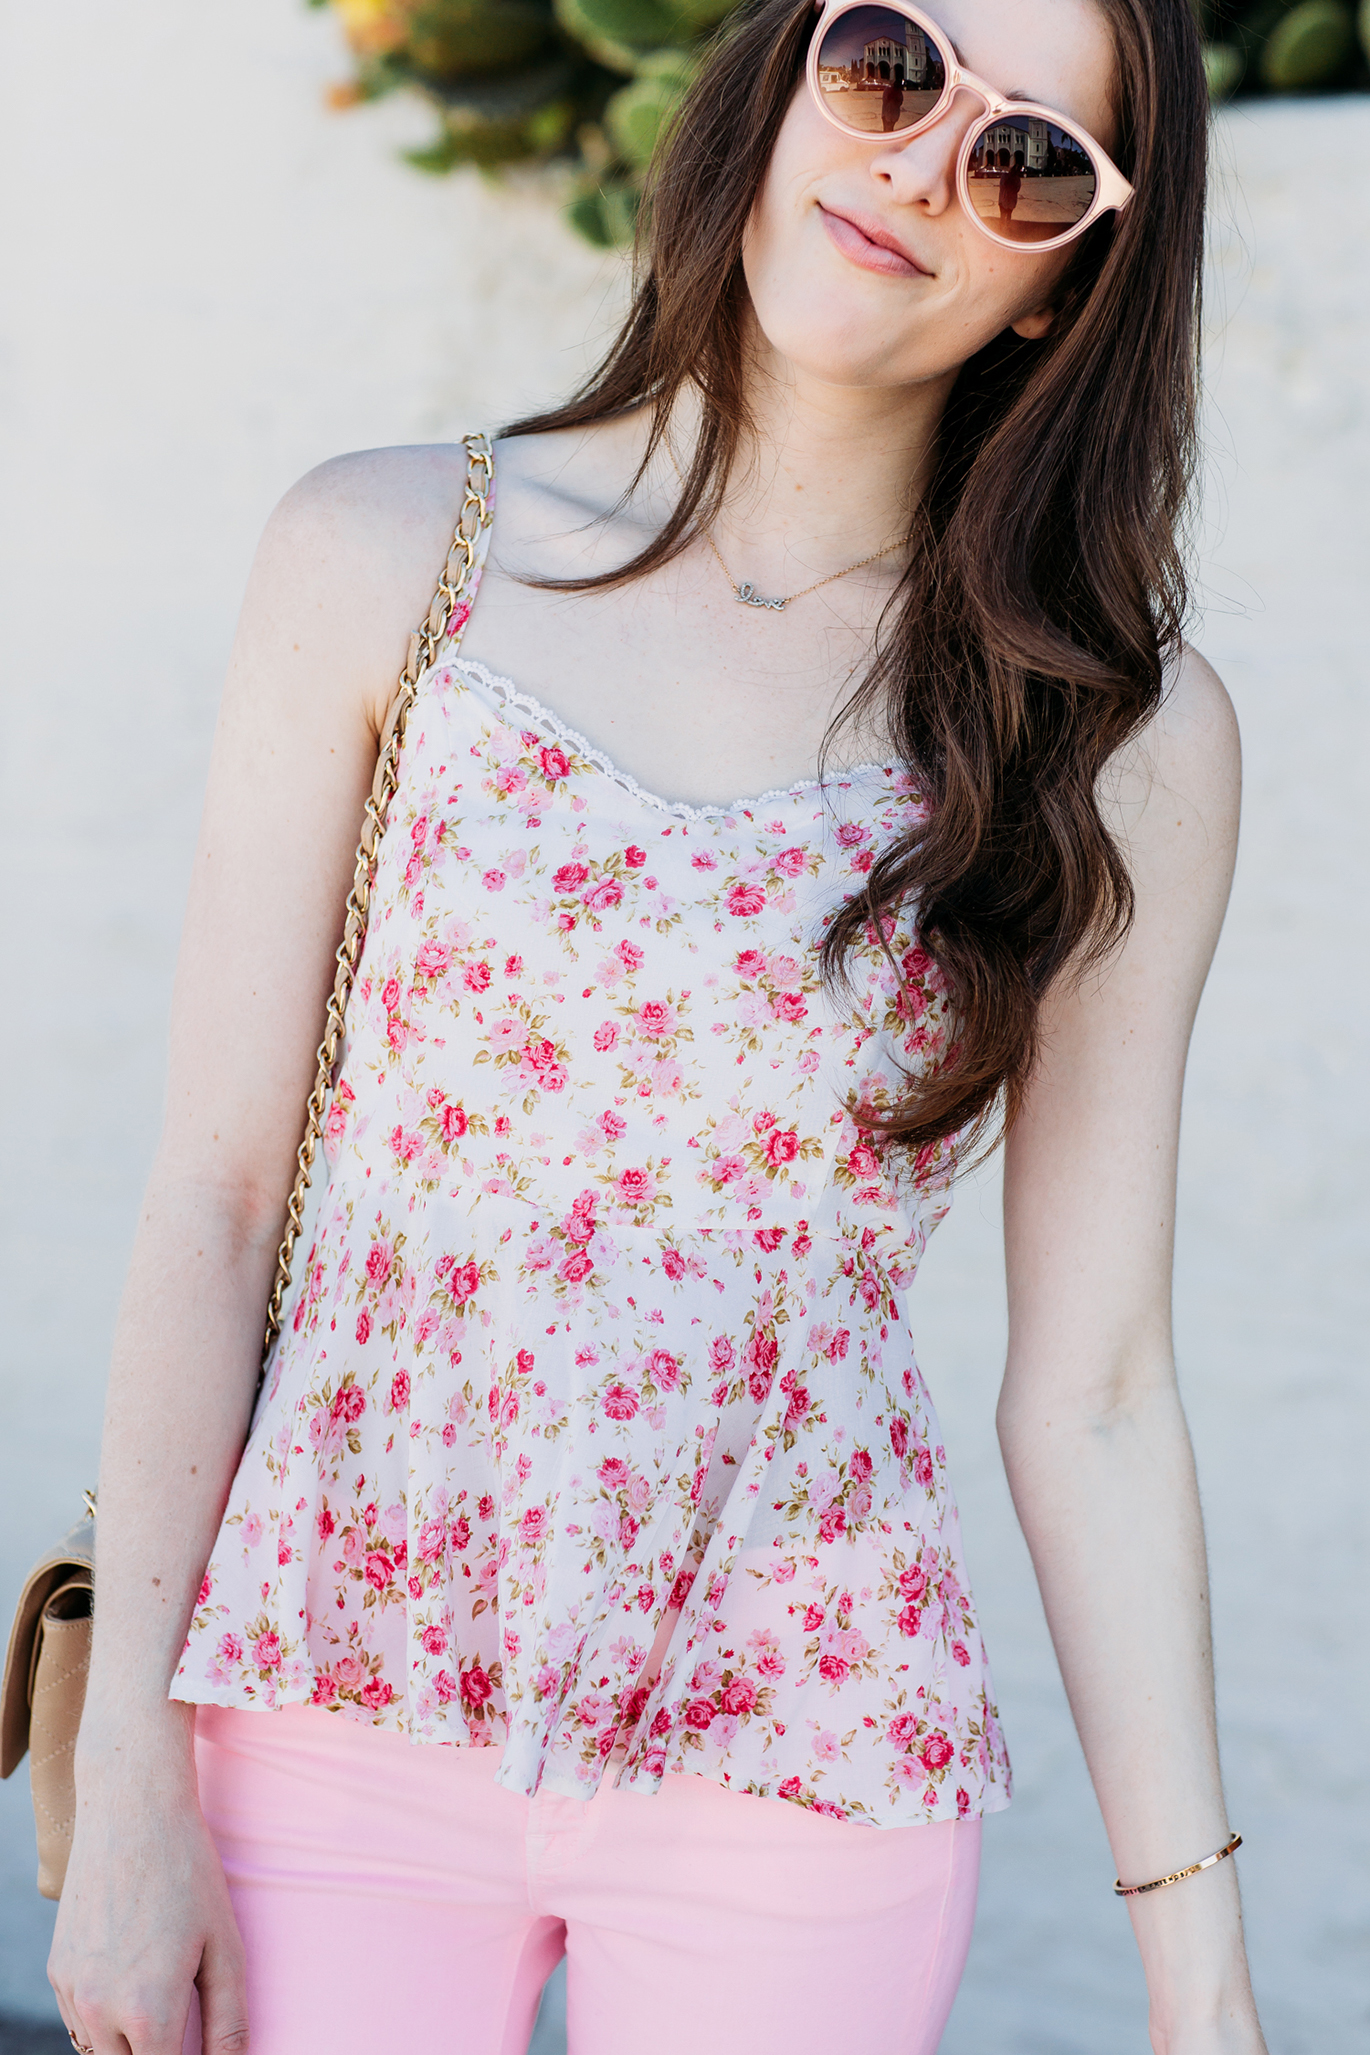 White top with pink flowers